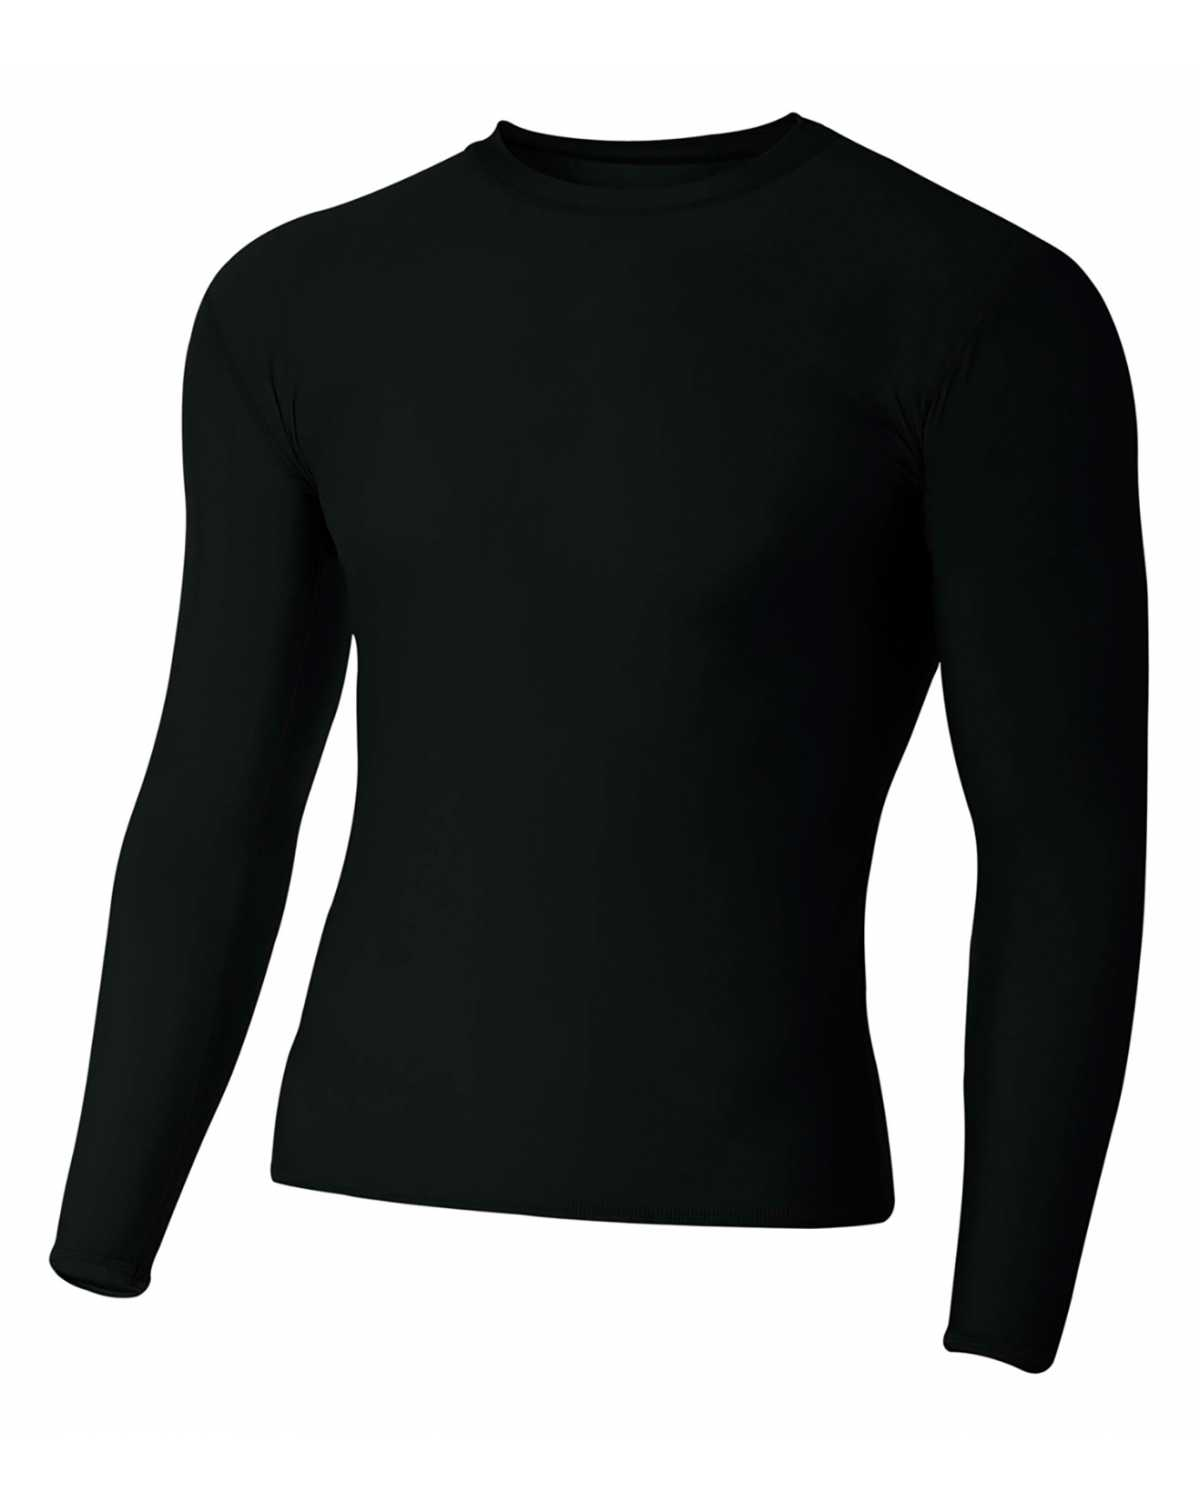 815e07d4bfd7f ... Spandex Long Sleeve Compression T-Shirt. n3133_51 View larger.  Previous. n3133_51 ...